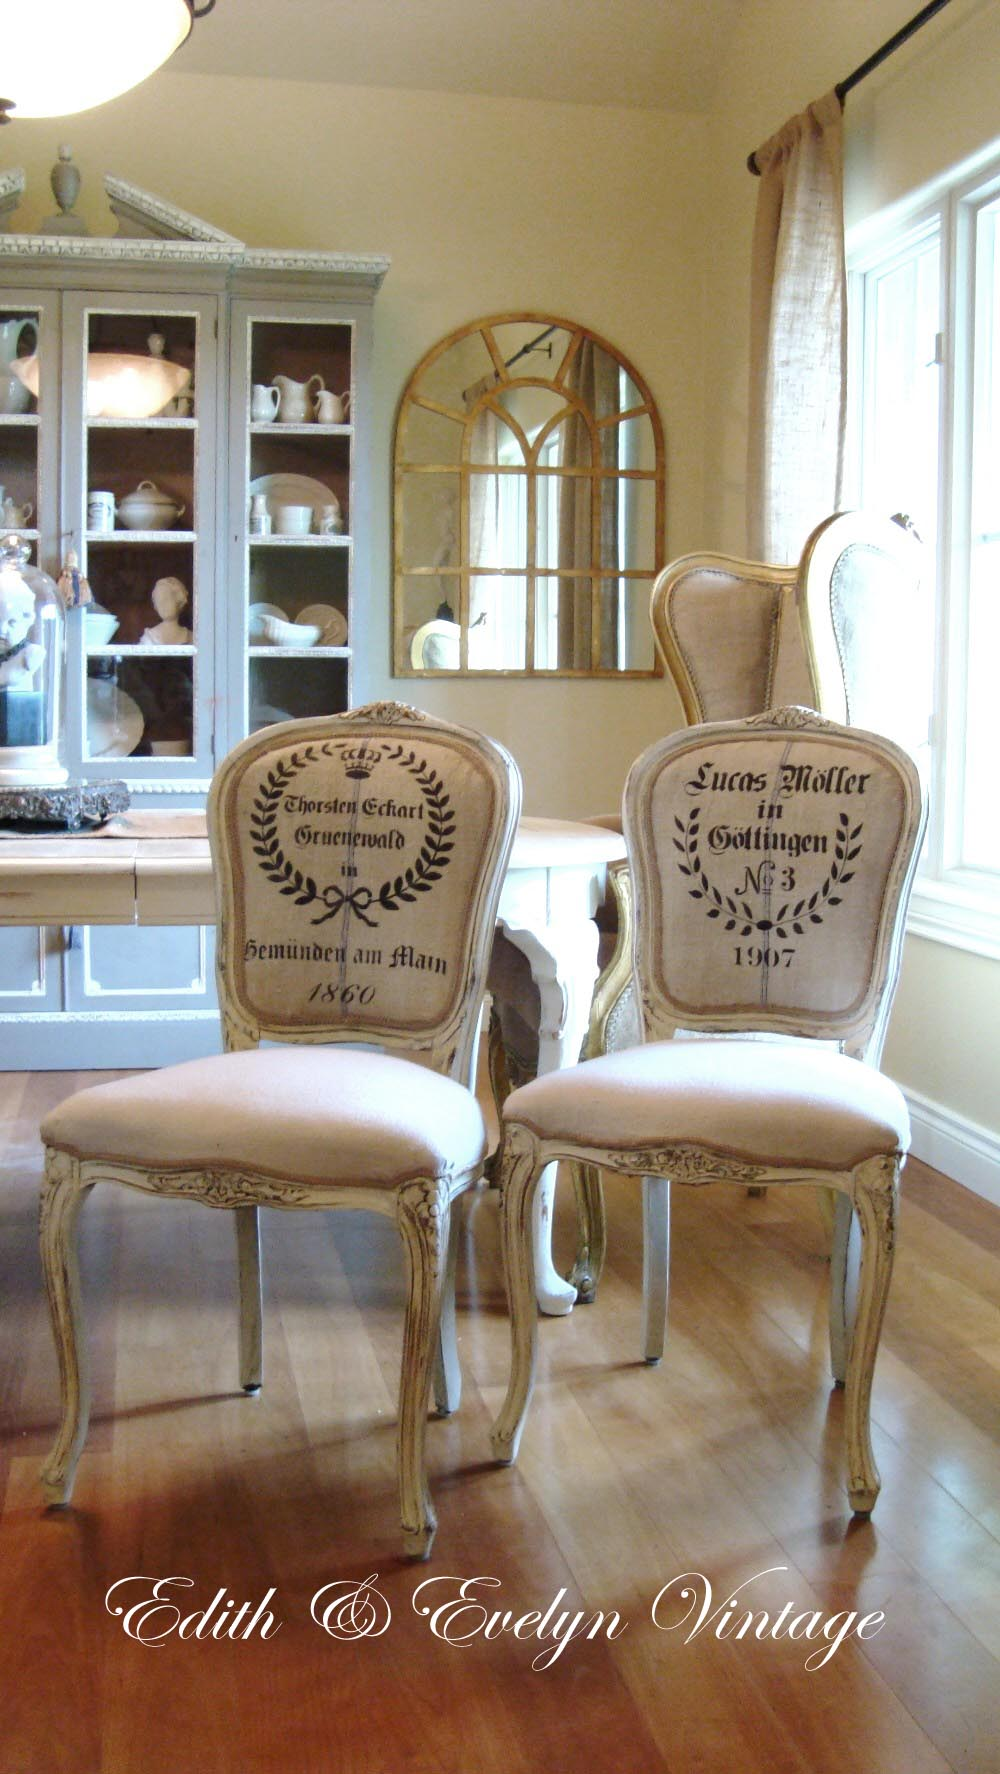 Furniture Projects | Edith & Evelyn Vintage